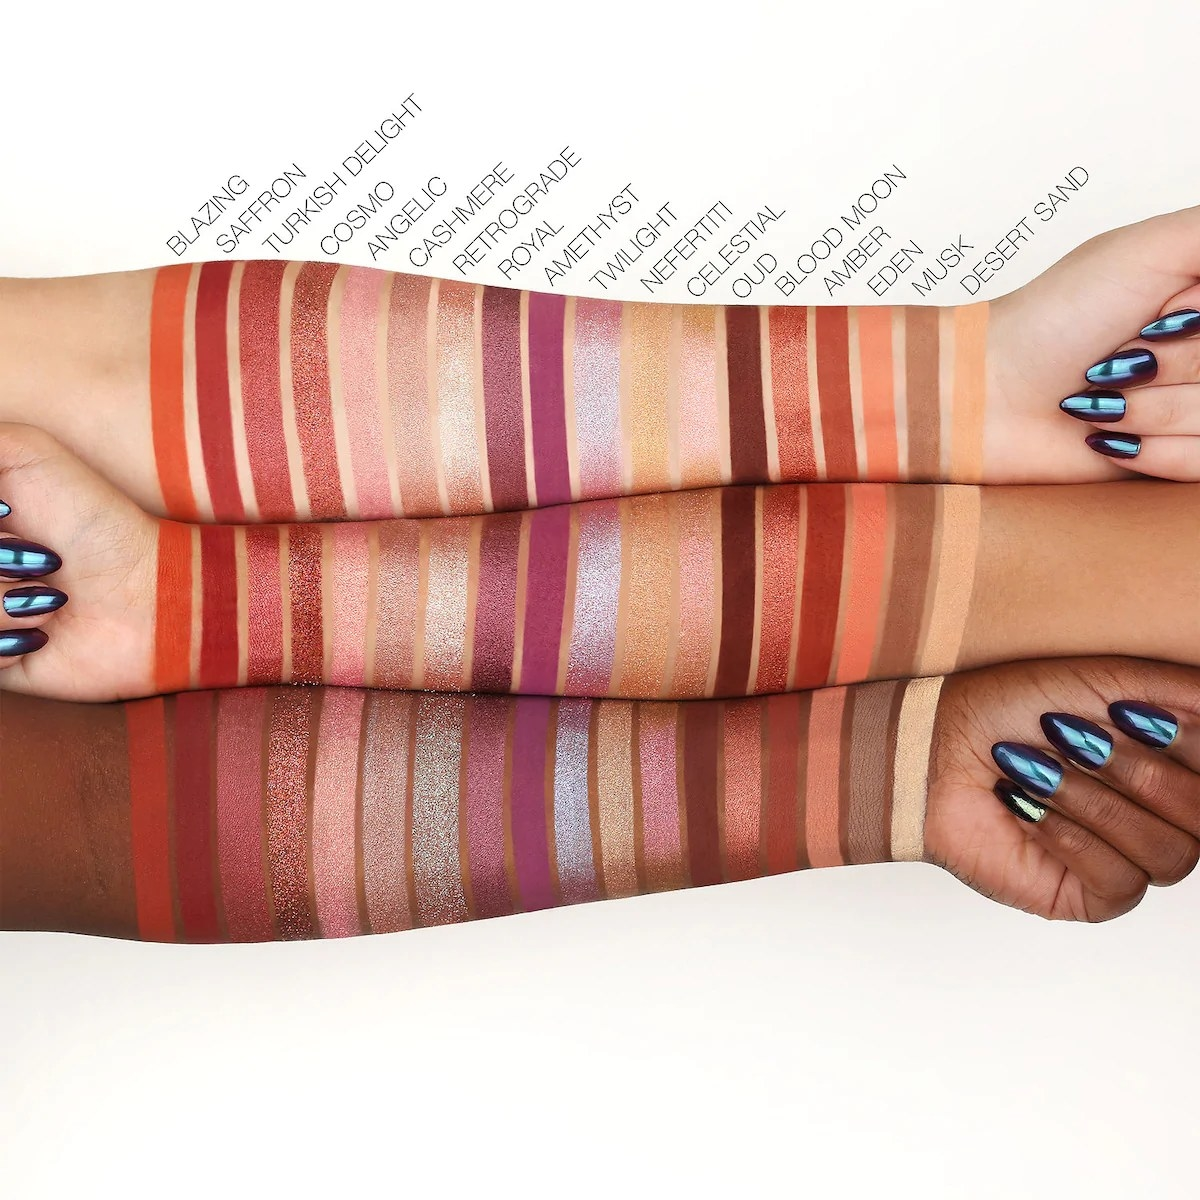 Models with different skin tones showing off all of the eyeshadow shades on their forearms